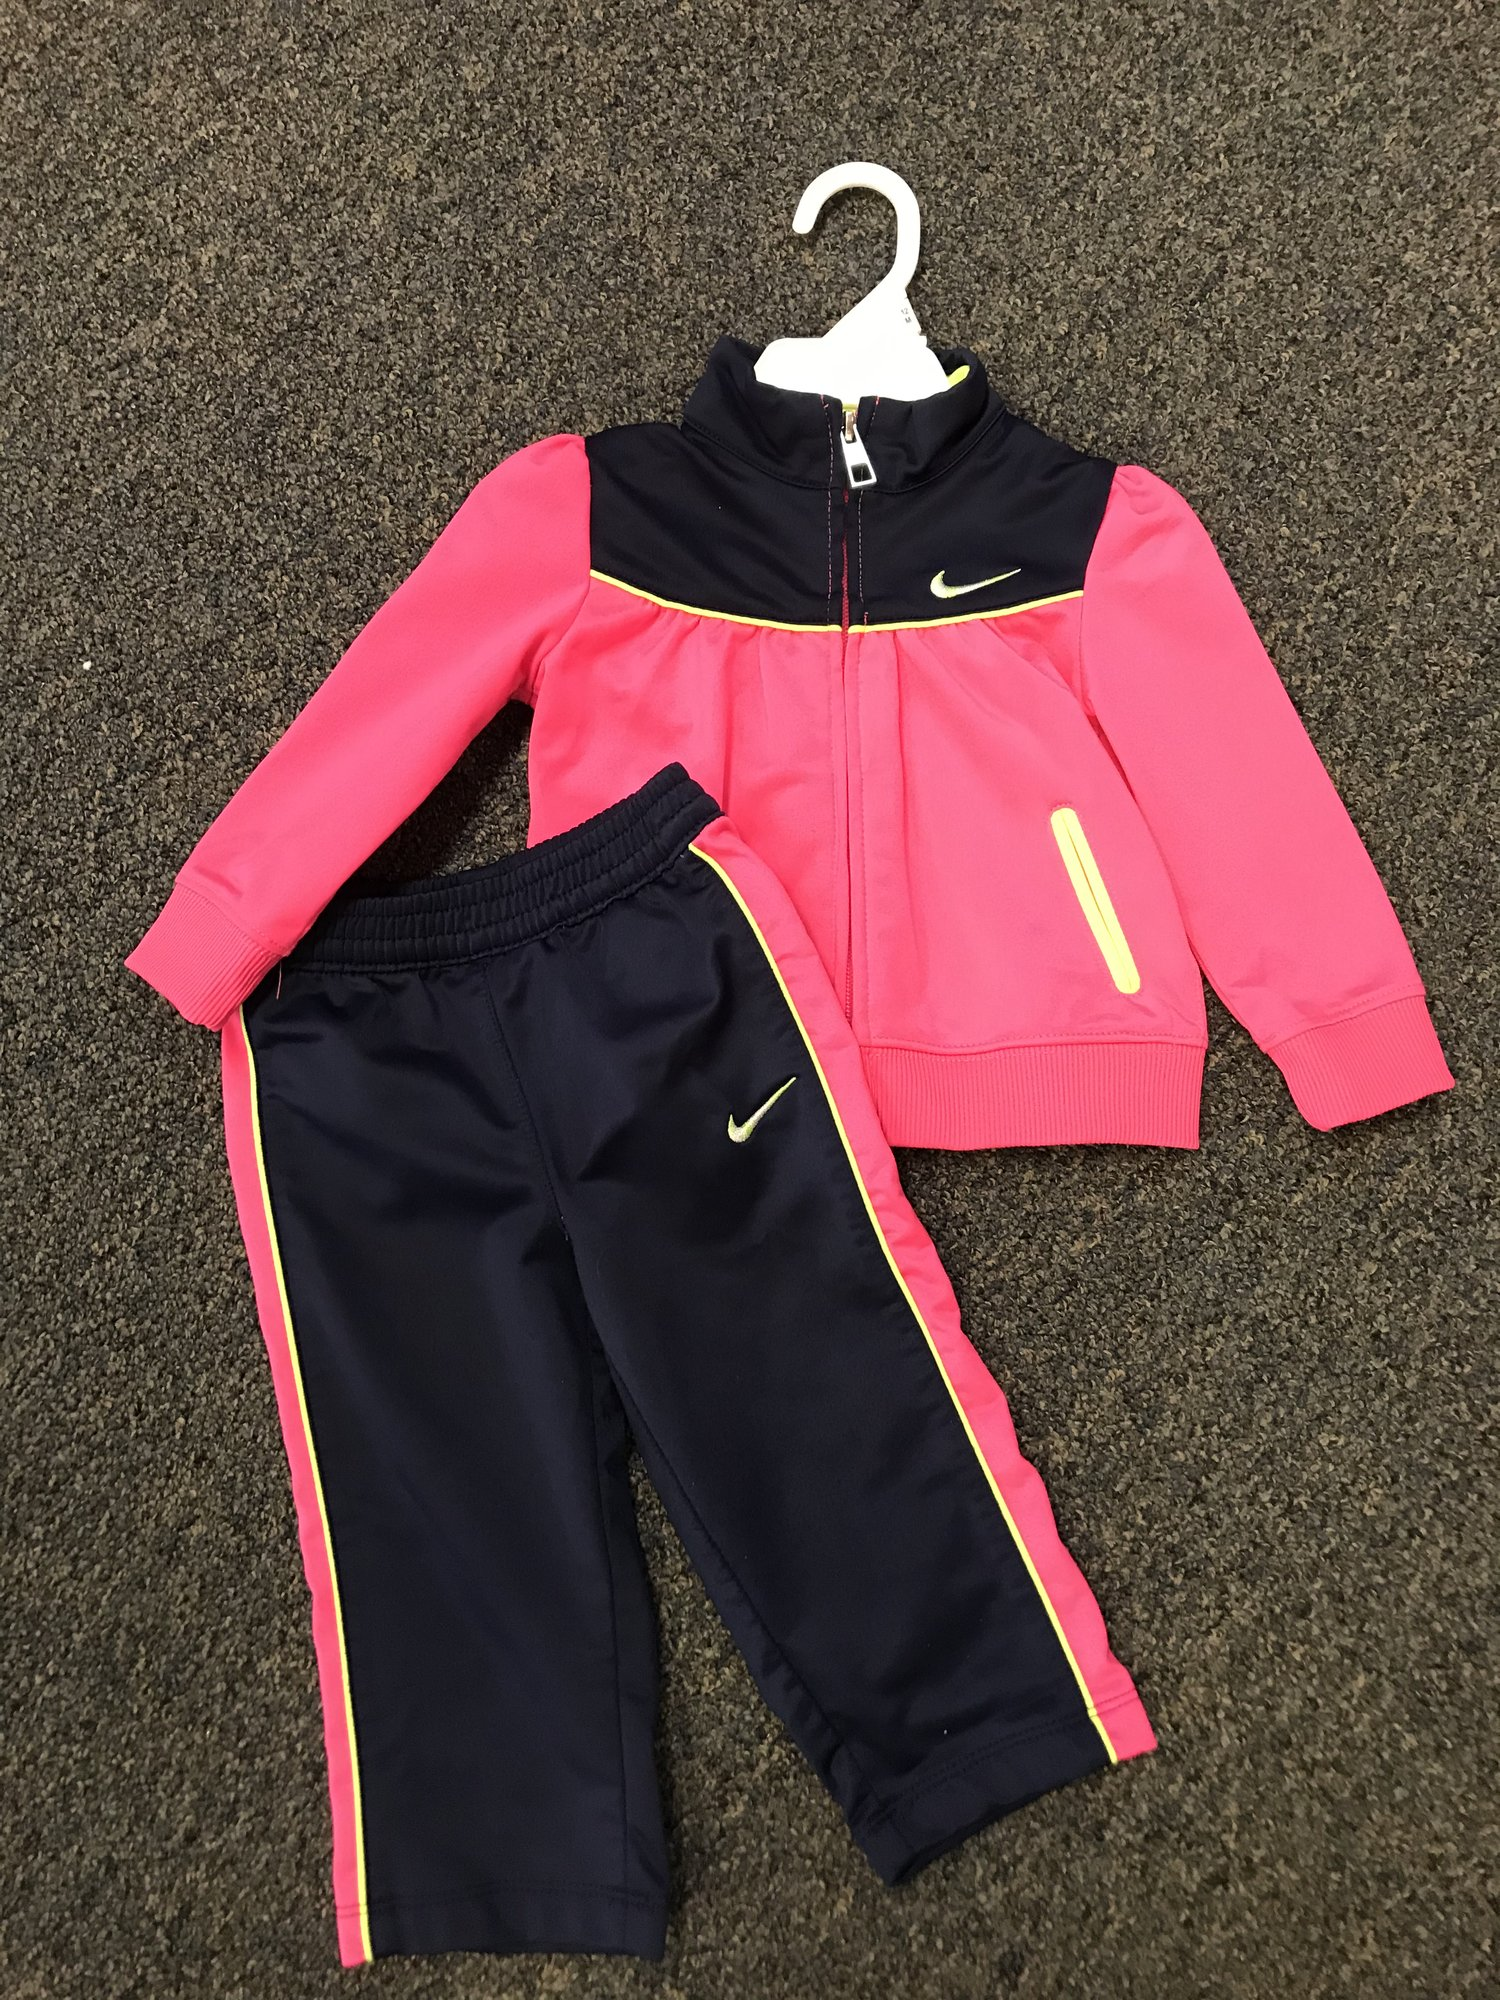 NIKE, 2pc Sweatsuit in excellent condition